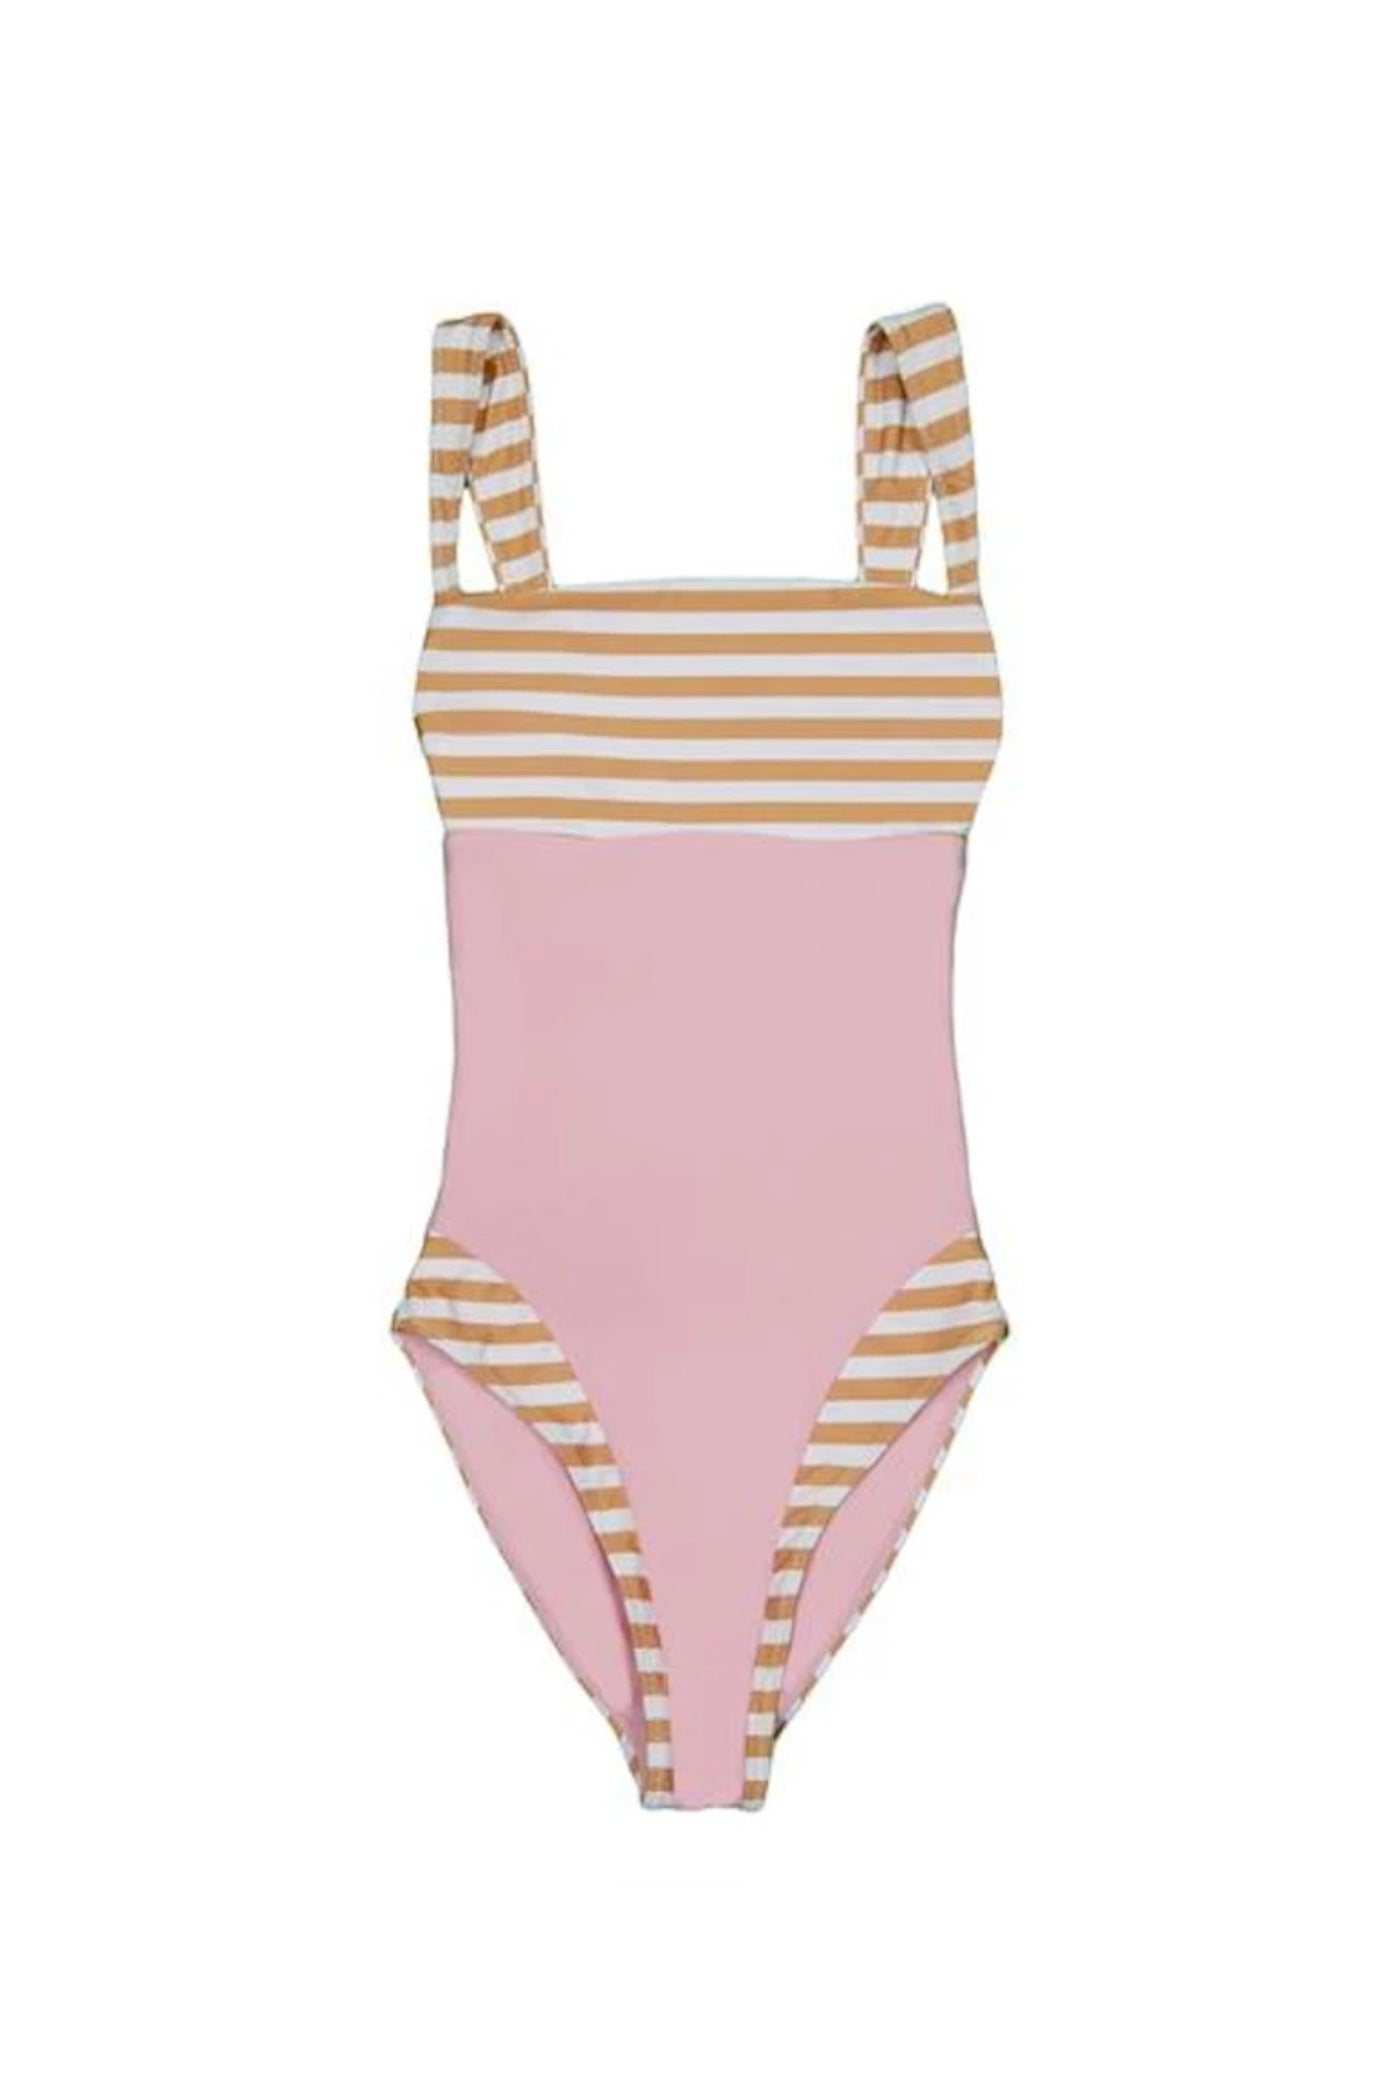 The Divine One Piece (Tan White Stripe/Pink)